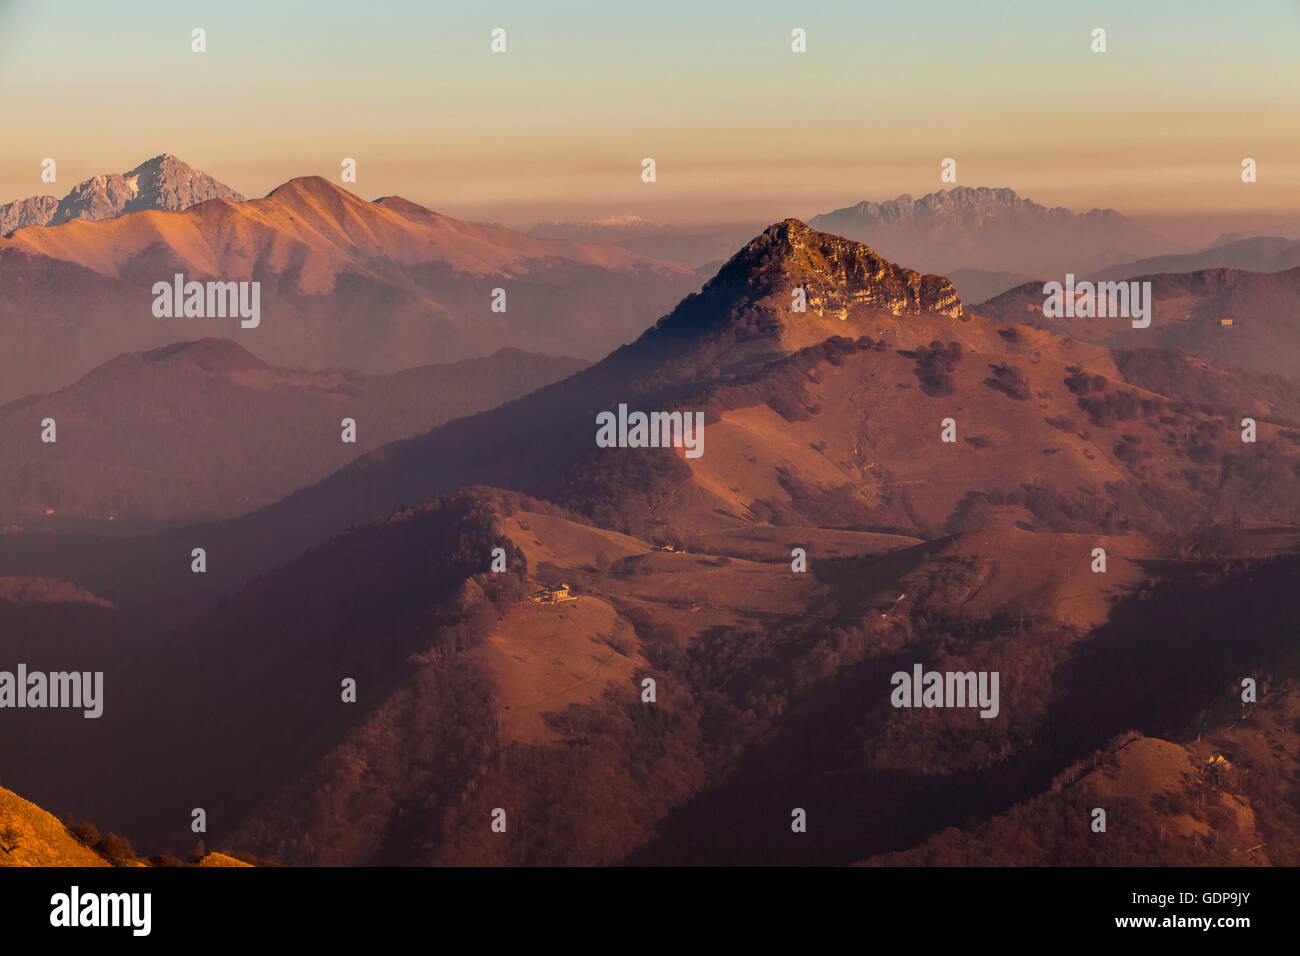 Elevated view of mountains at dusk, Monte Generoso,Ticino, Switzerland - Stock Image